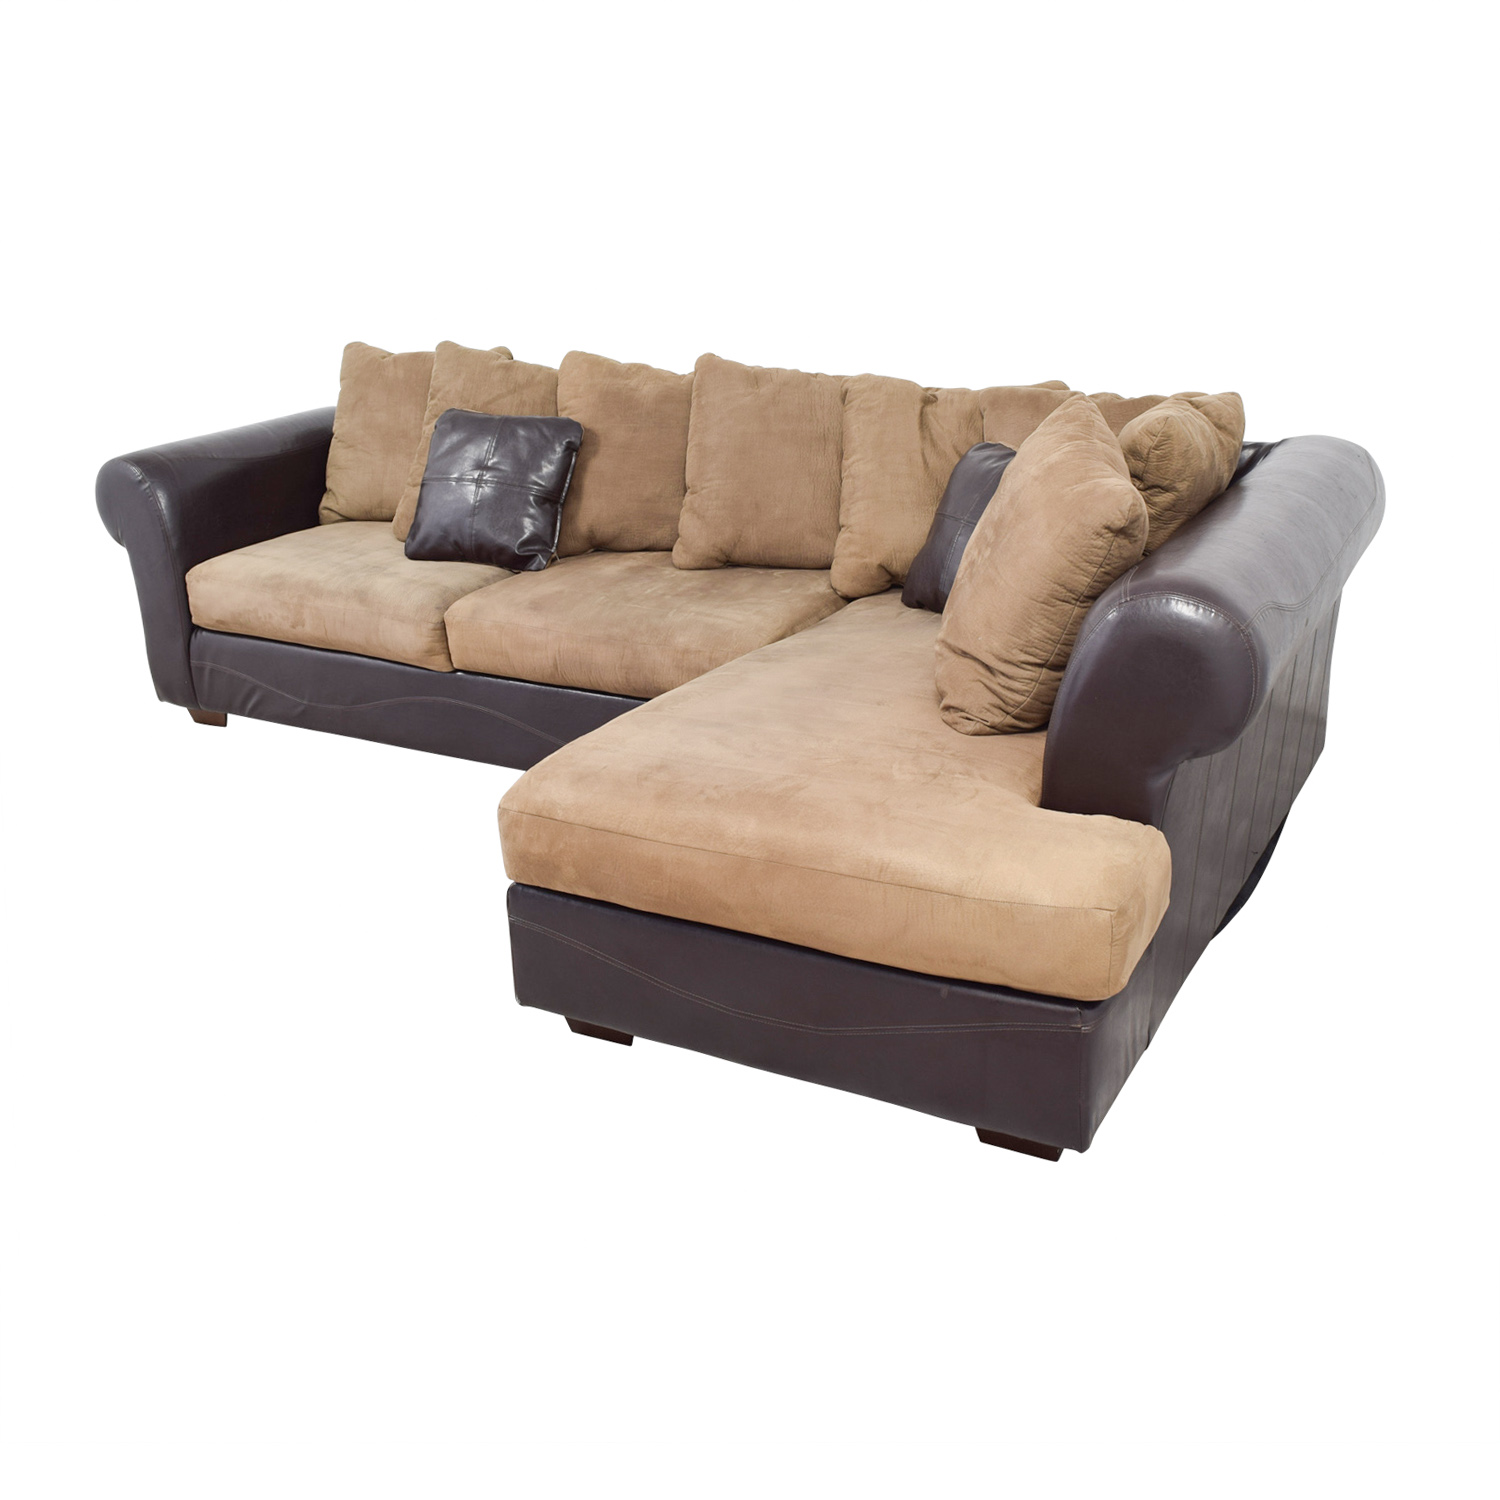 shop Ashley Furniture Ashley Furniture Brown Leather and Tan Microfiber Chaise Sectional online